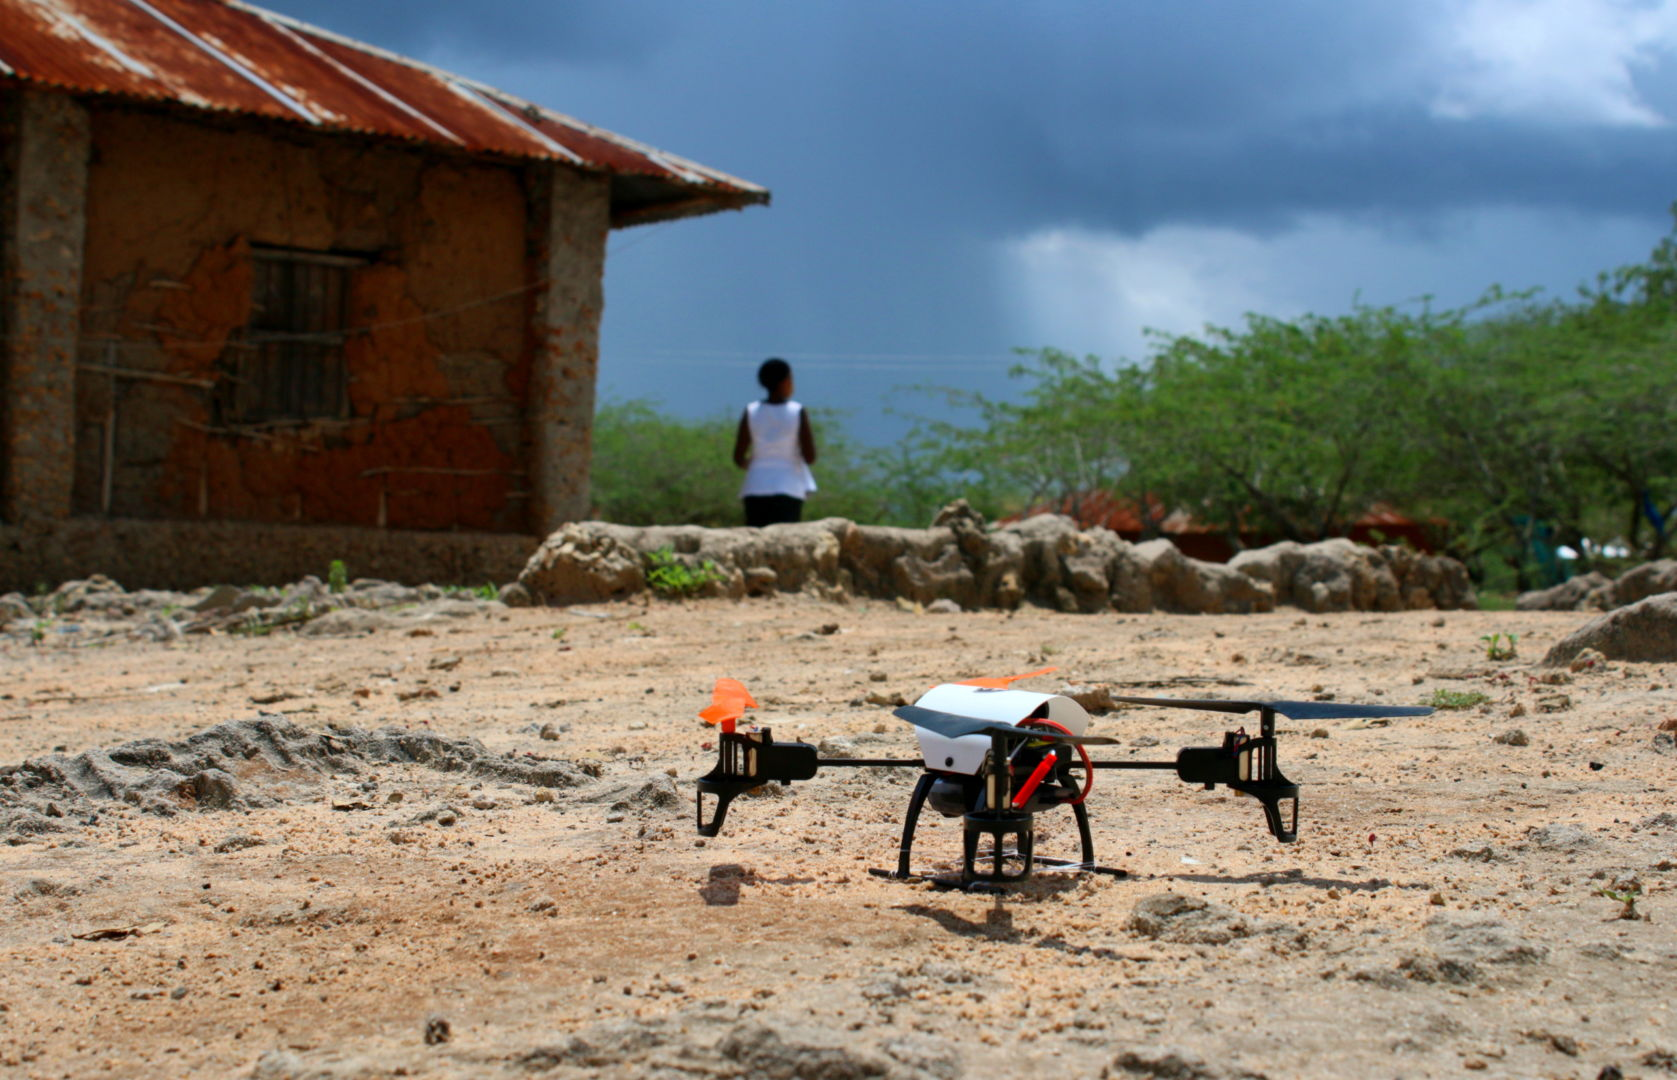 Humanitarian Drones: Perceptions vs. Reality in Kenya's Tana Delta